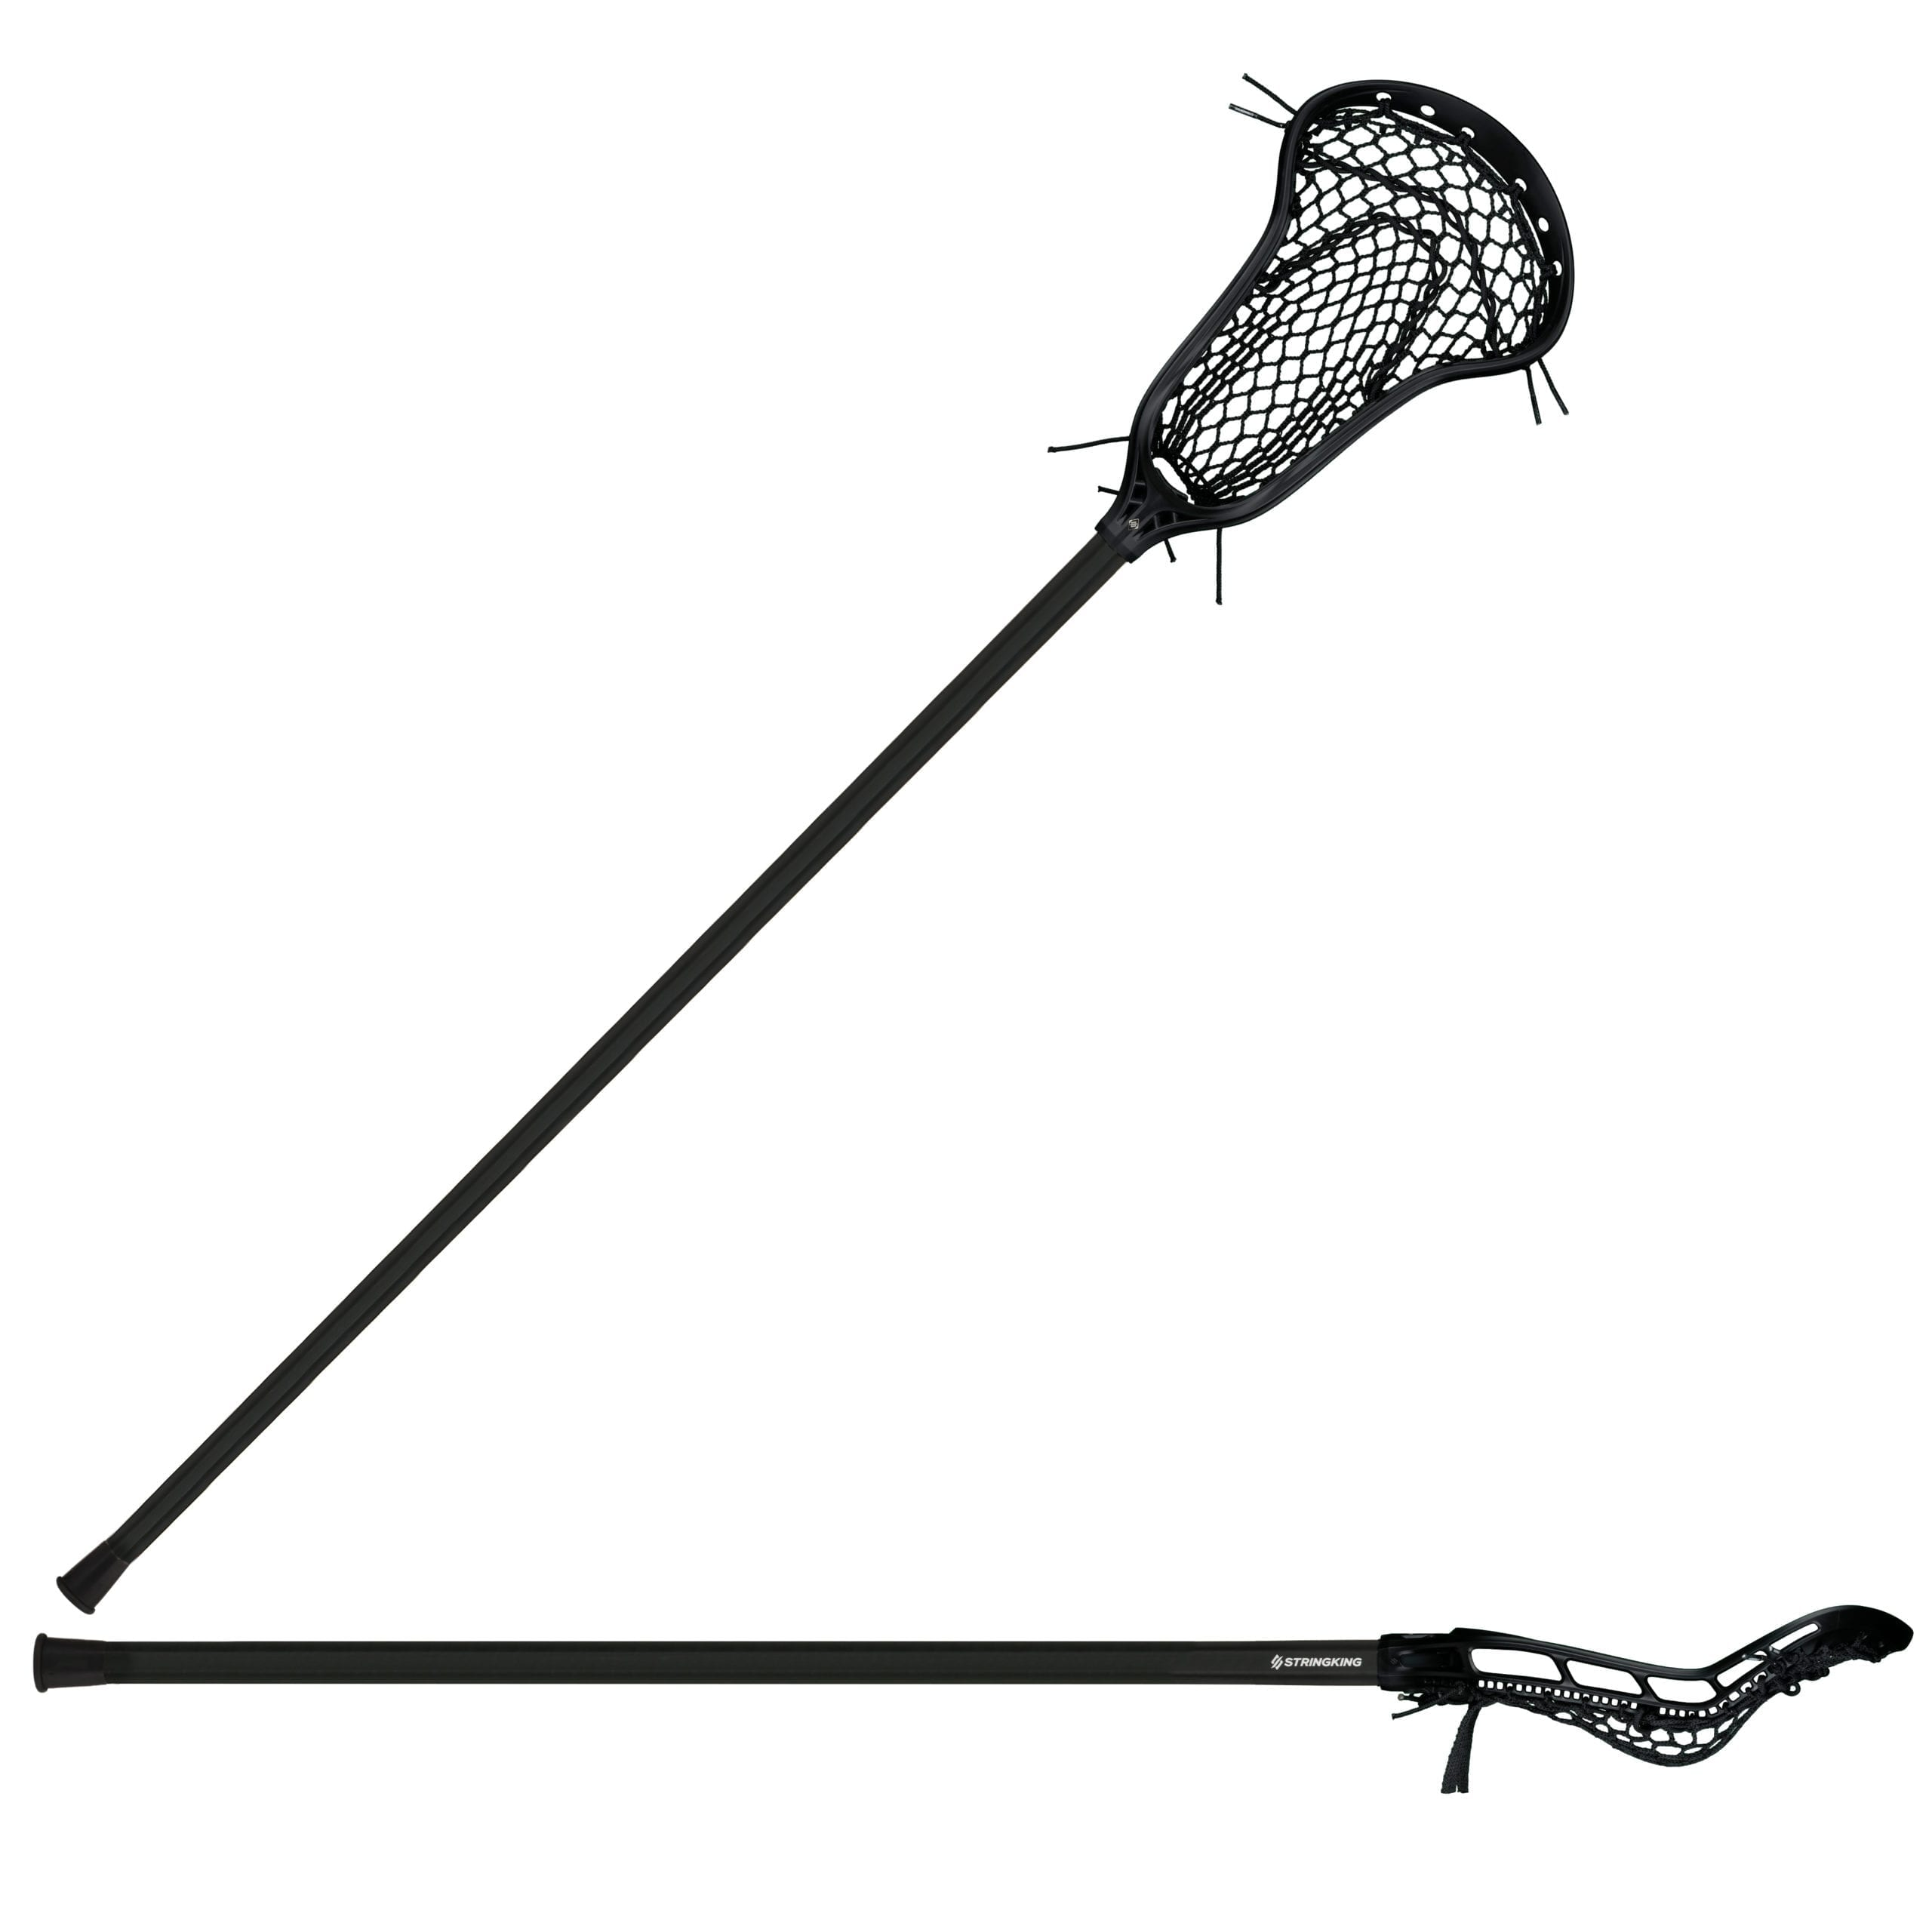 StringKing-Womens-Complete-2-Pro-Defense-Full-Stick-Black-scaled-1.jpg